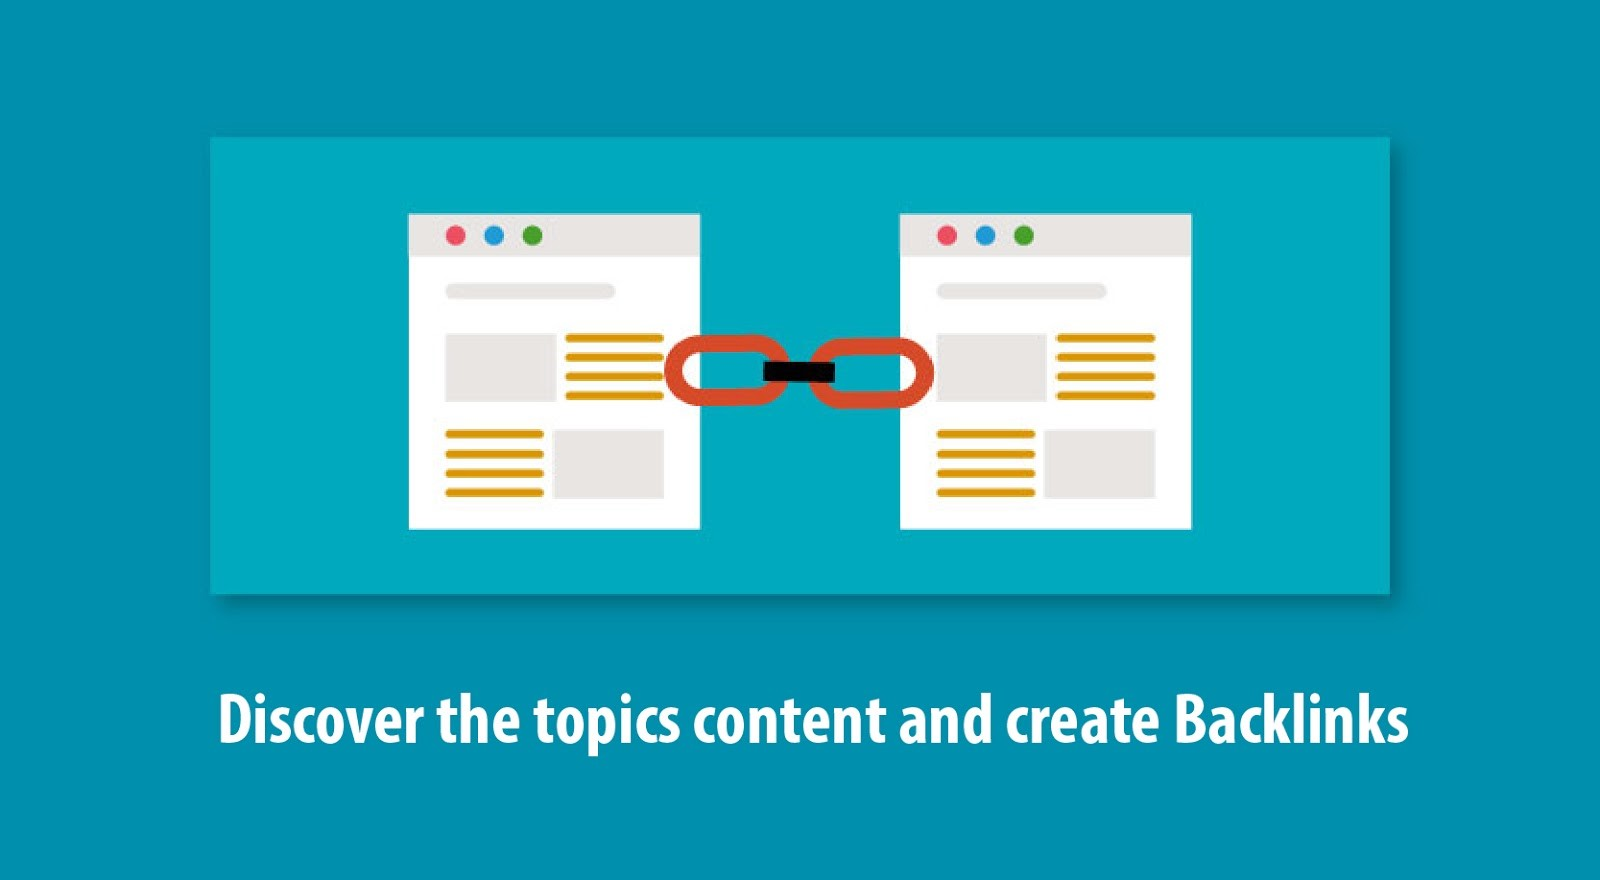 Discover the topics content and create Backlinks